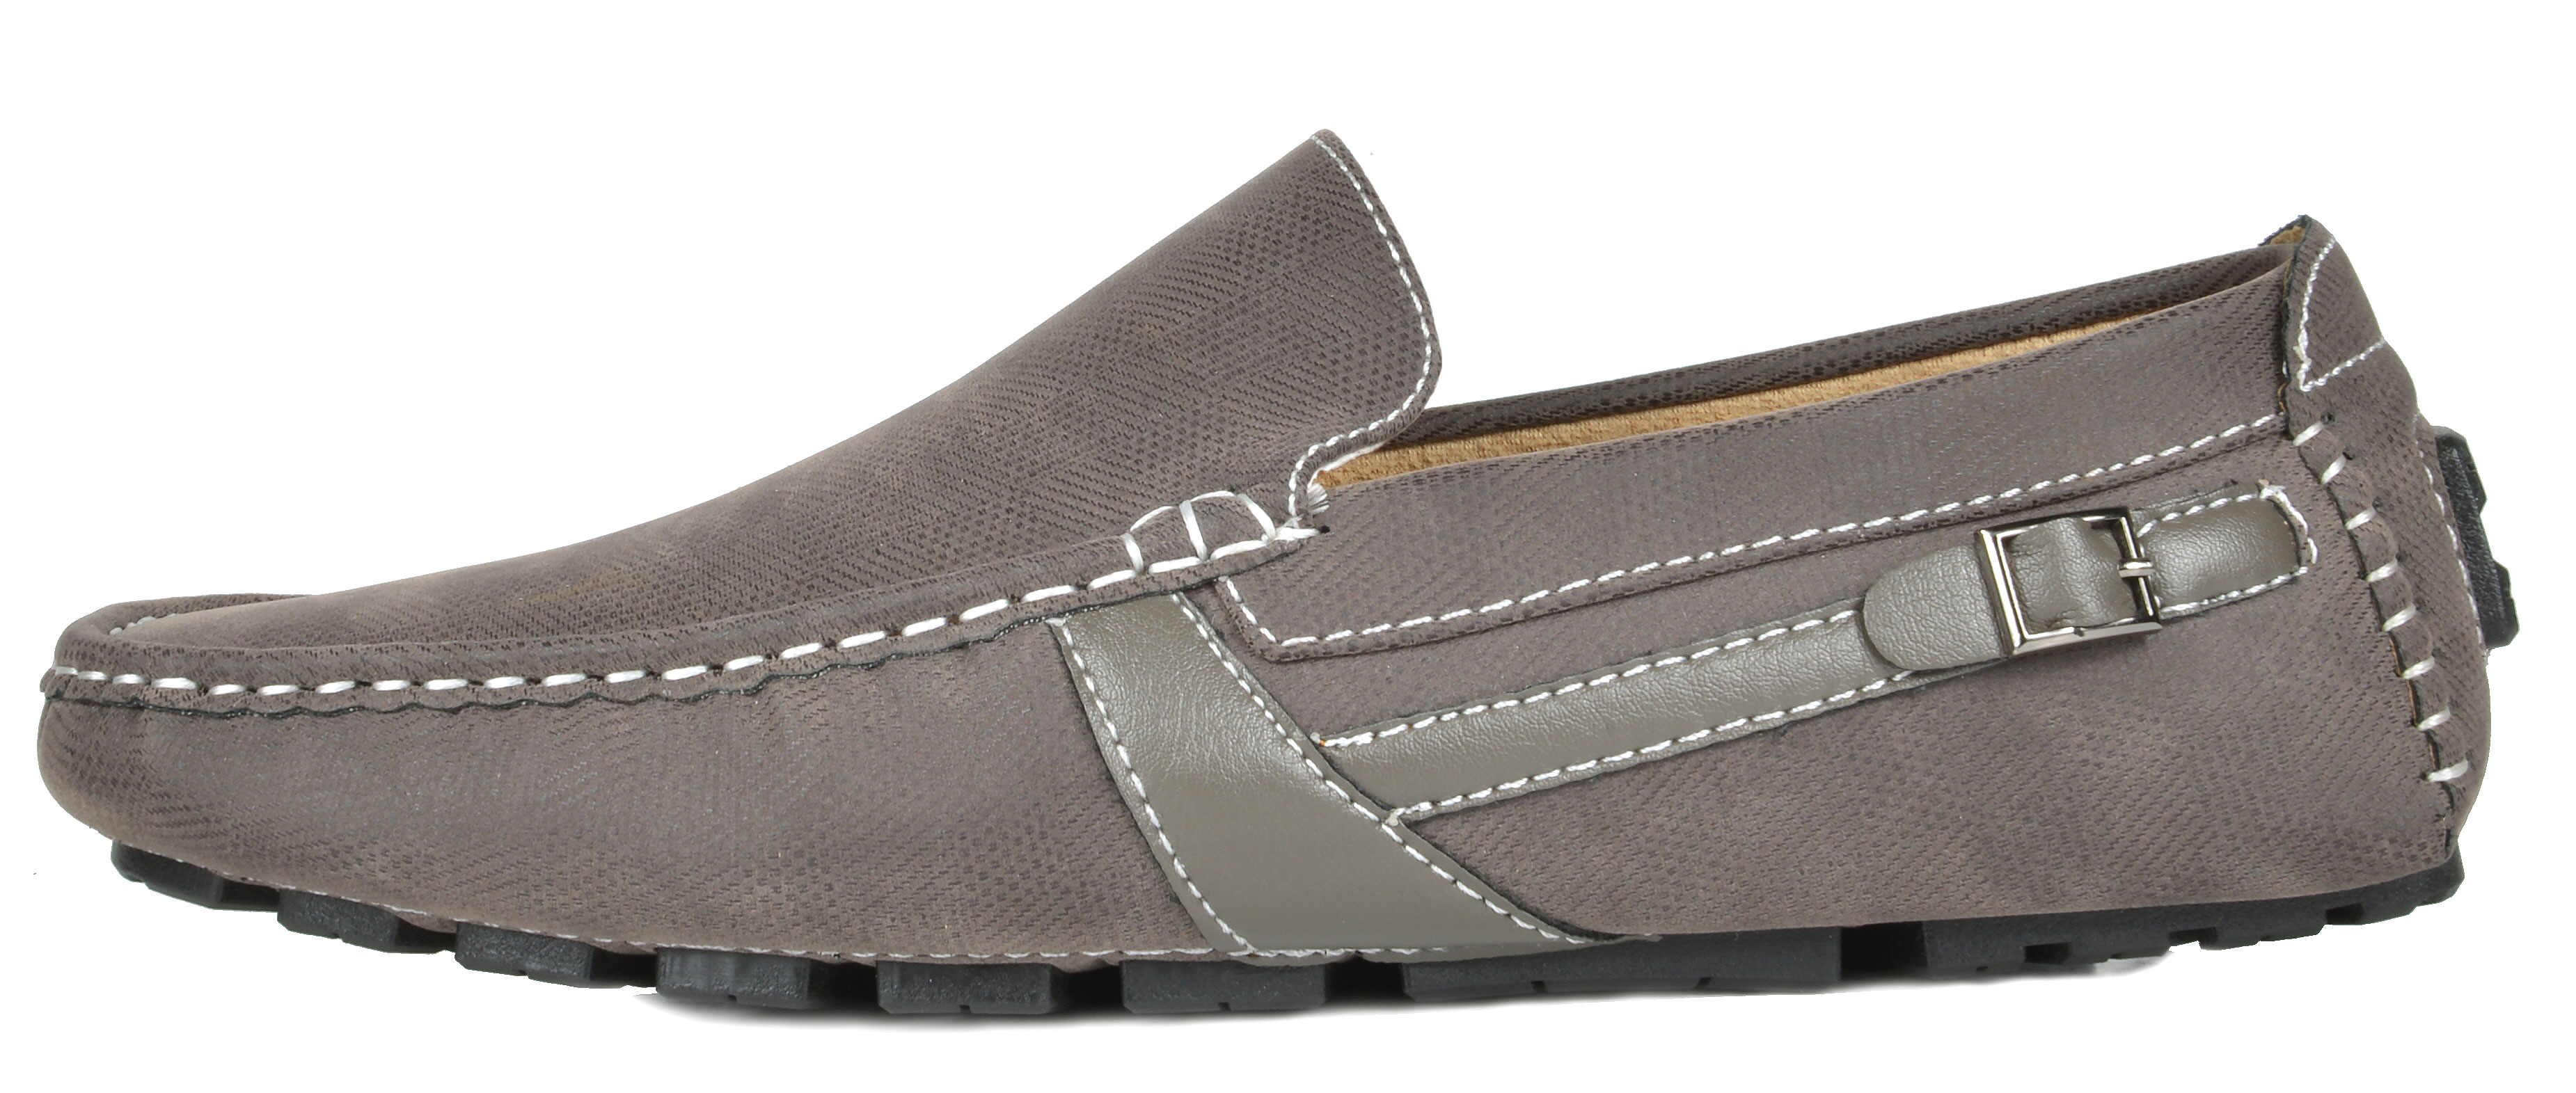 Bruno-Marc-Men-039-s-New-Classic-Fashion-Slip-on-Driving-Casual-Loafers-Boat-Shoes thumbnail 61